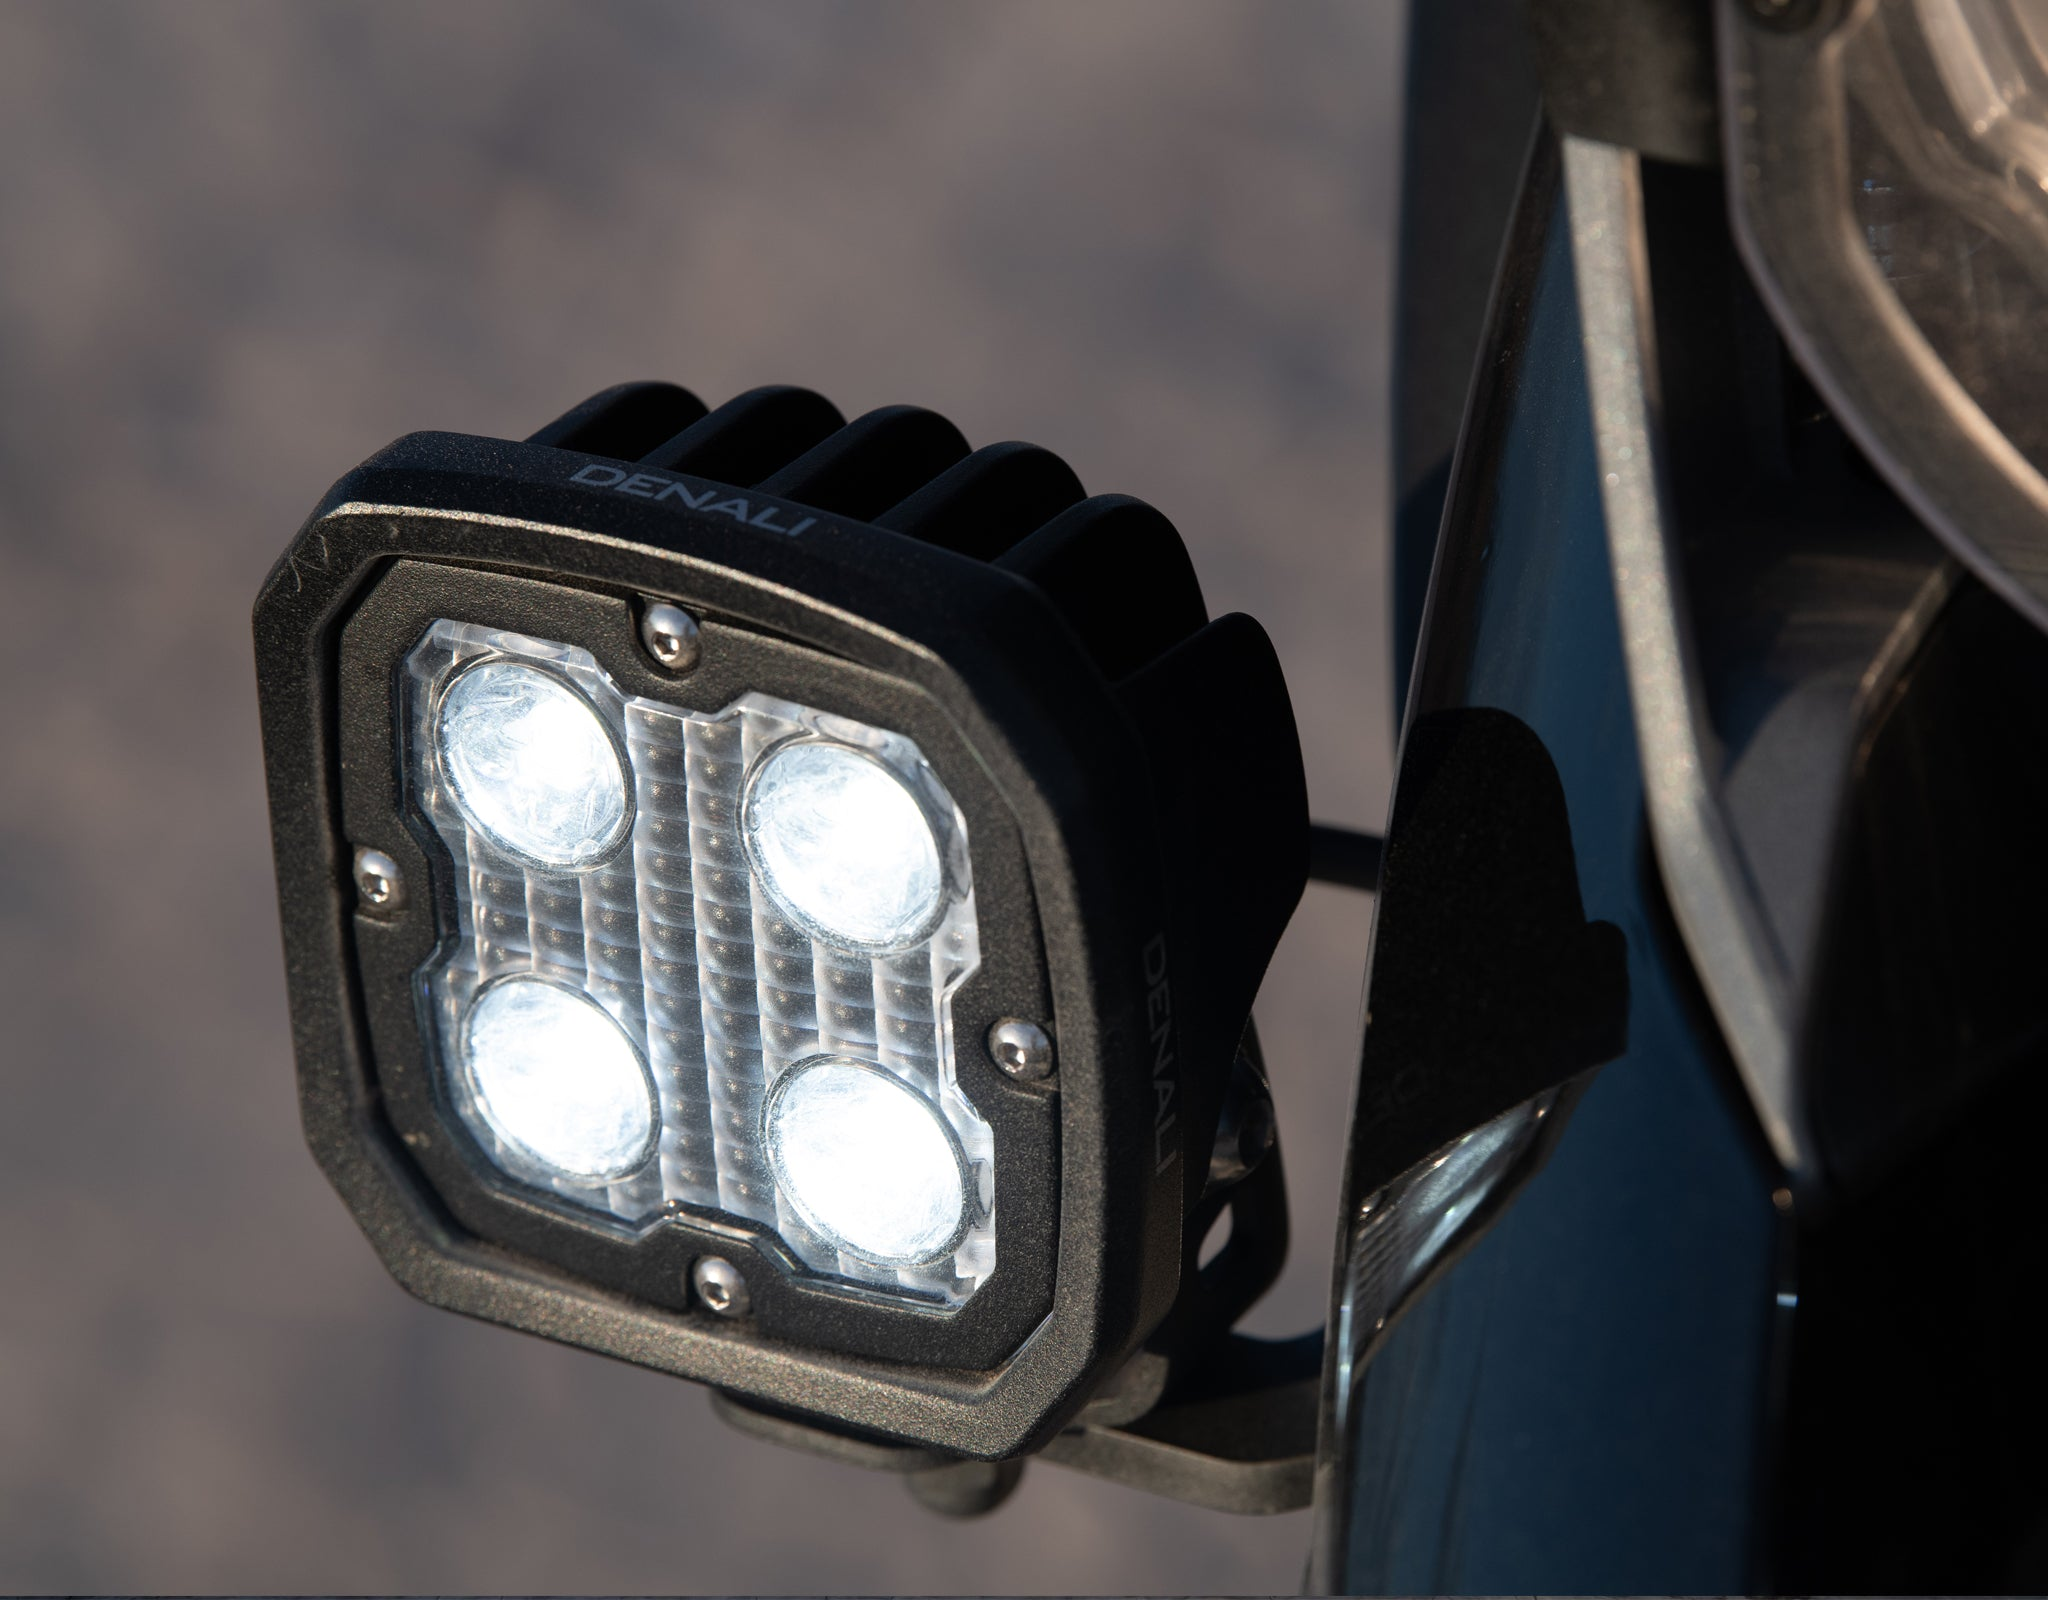 D4 Light Kit mounted to R1200GS Vehicle-Specific Light Mount